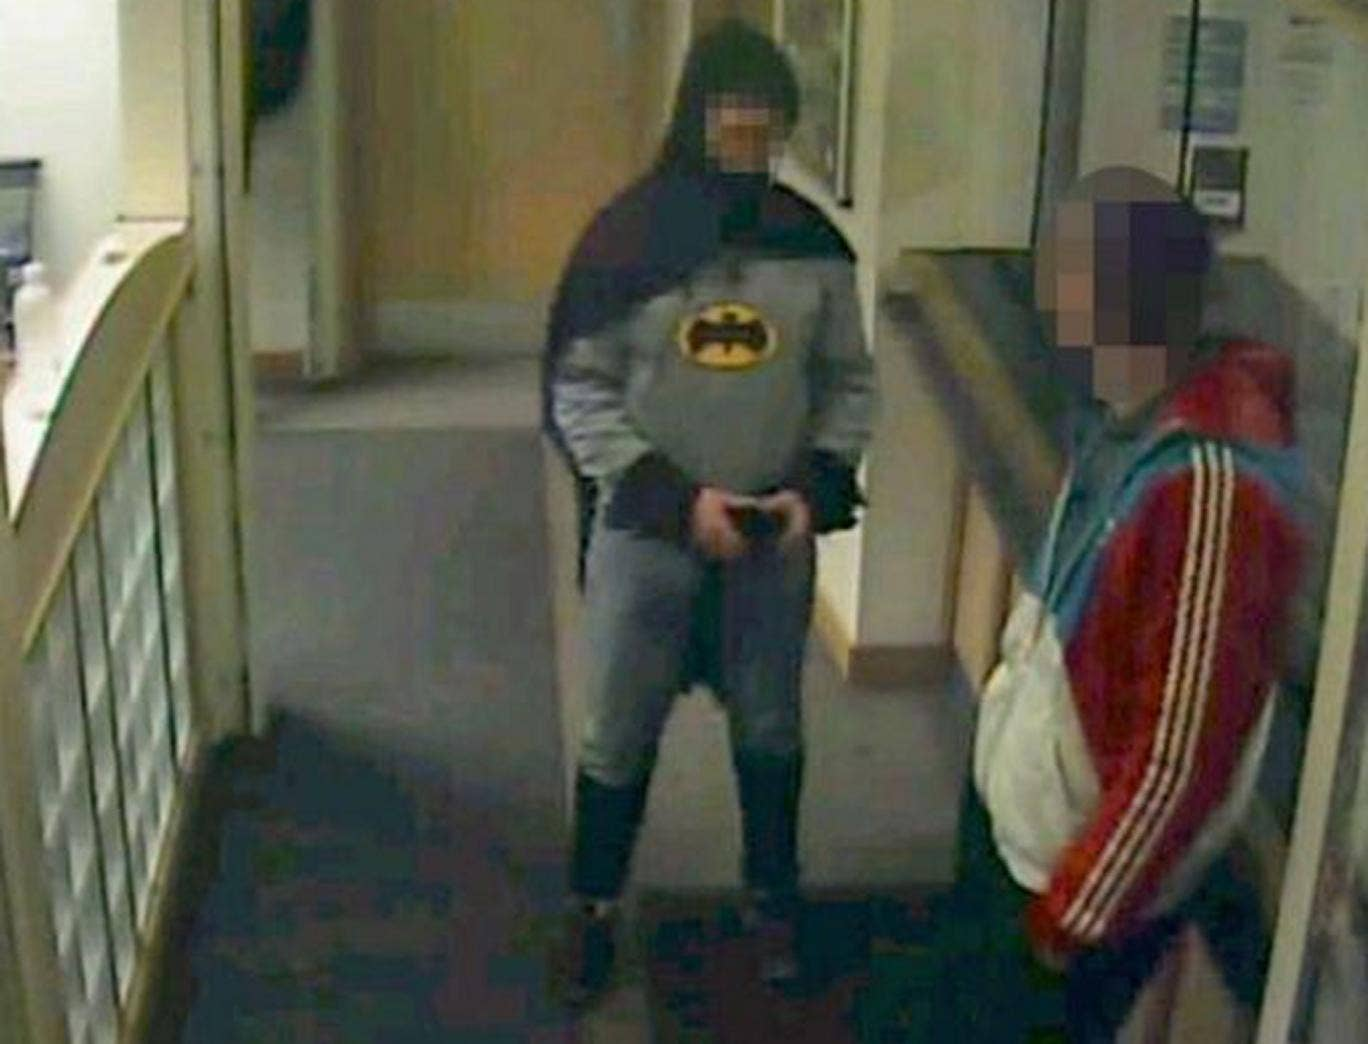 A man dressed as Batman marches a suspected fraudster to a police station in Bradford